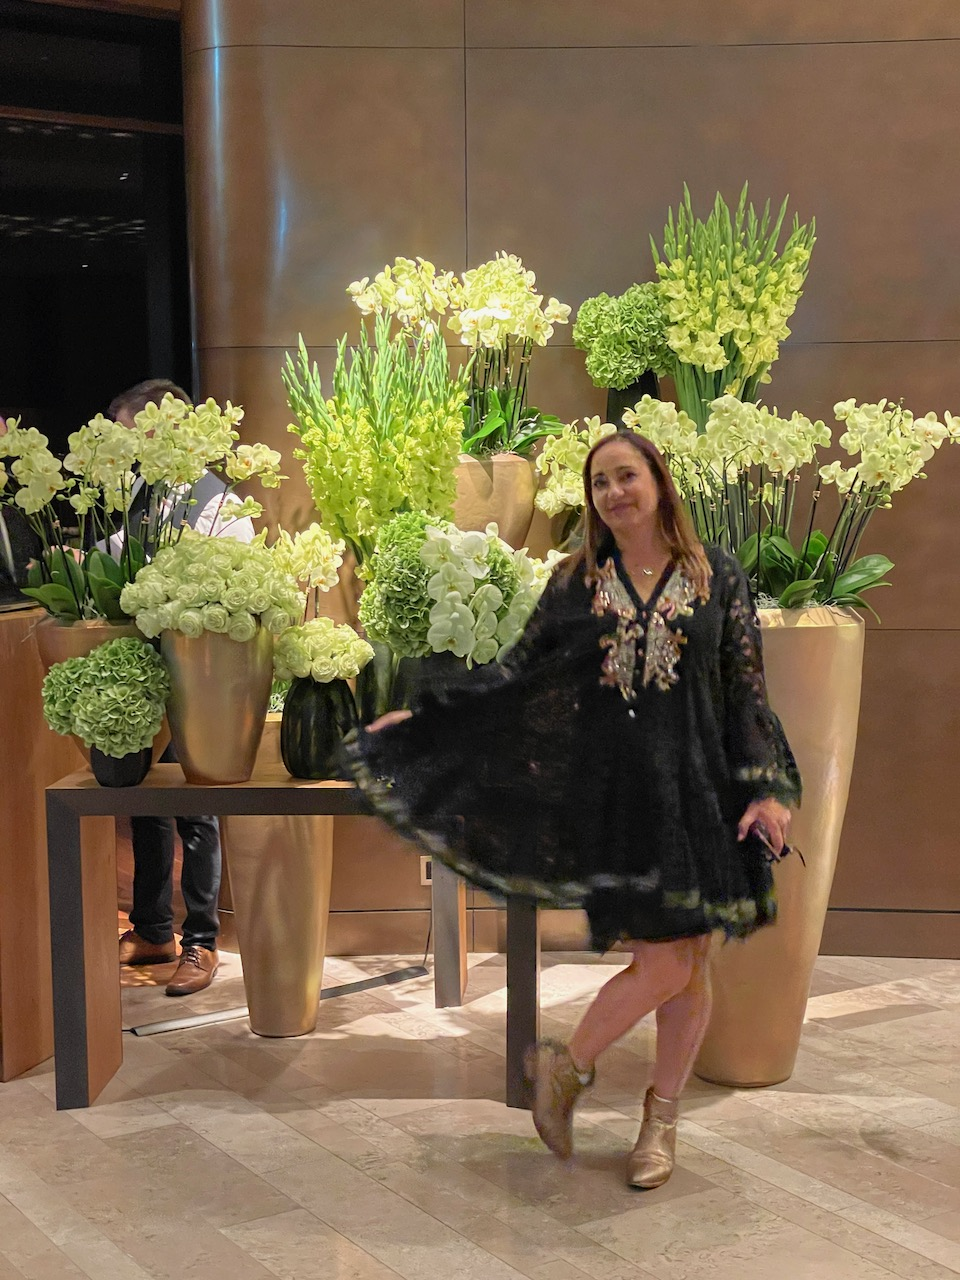 My friend taking a photo with the wonderful bouquets of flowers in the main lobby